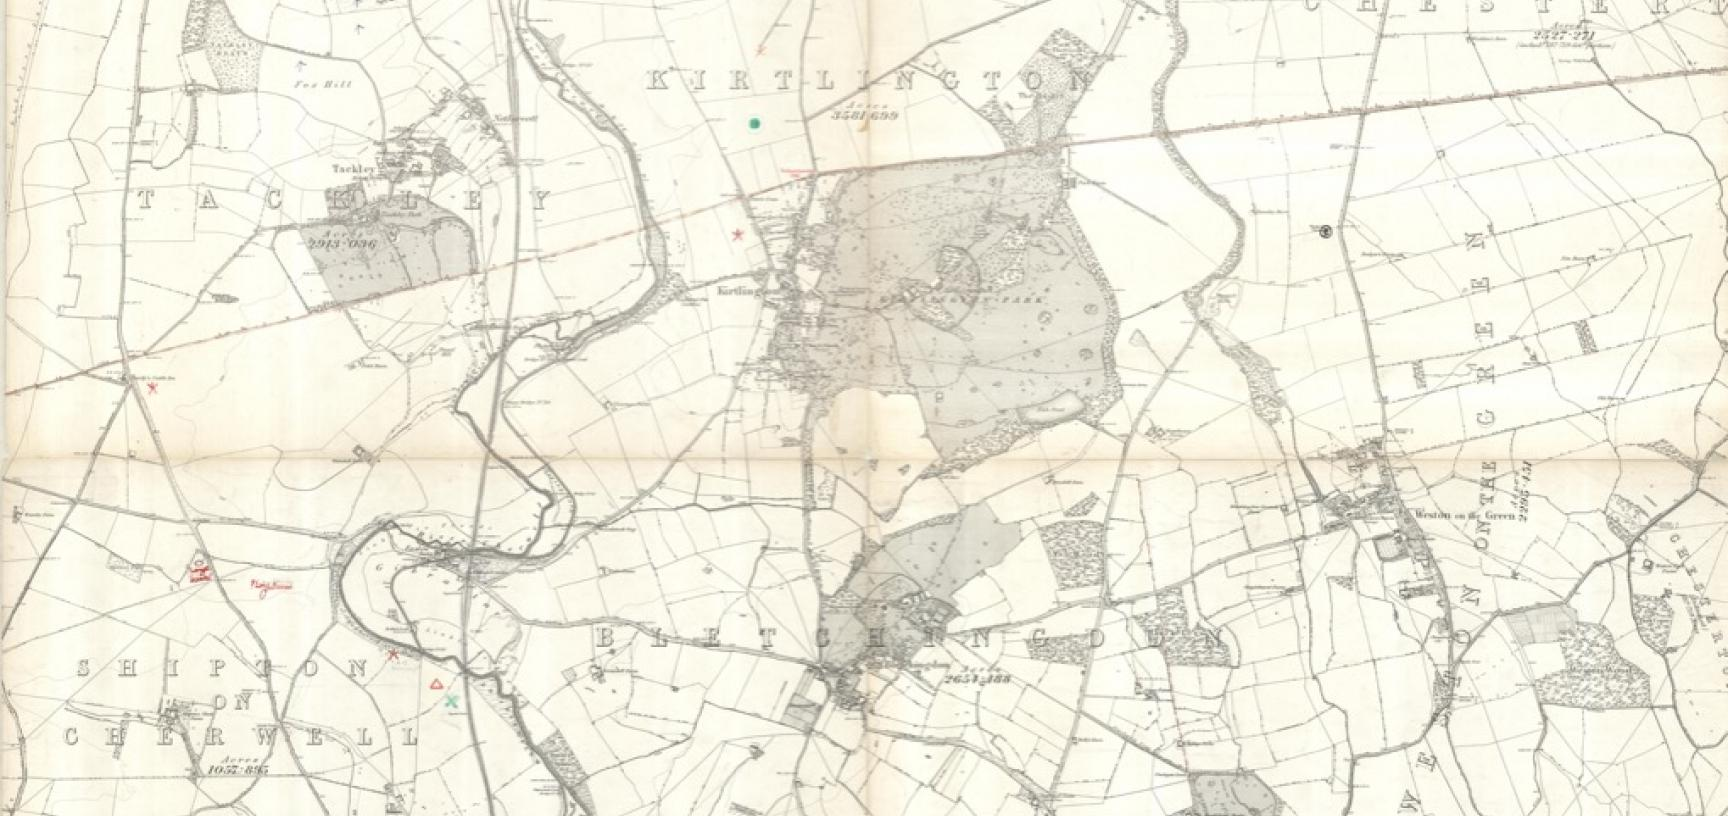 Map of Kirtlington, Oxfordshire, annotated by Percy Manning with sites of archaeological significance. (Copyright Ashmolean Museum of Art and Archaeology, University of Oxford. Reference: GB 1648 MANN/1/AP/039-040)